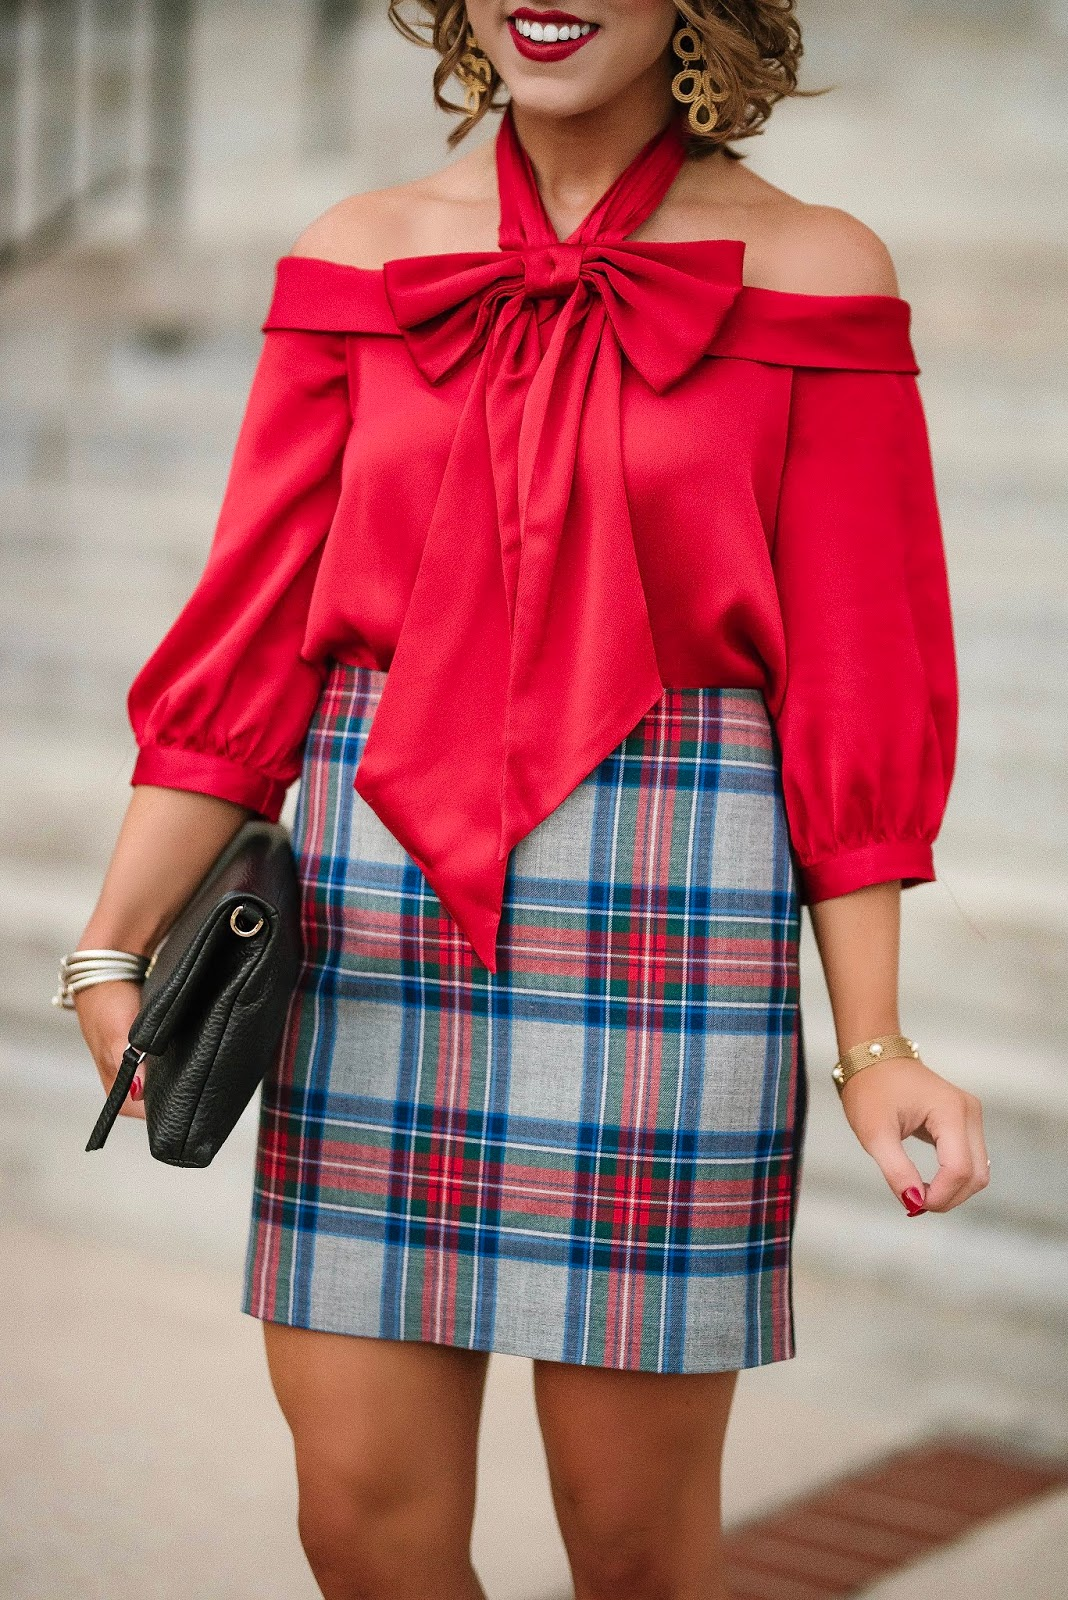 Dressed in Bows: Under $100 Bow Top + Plaid Skirt - Something Delightful Blog